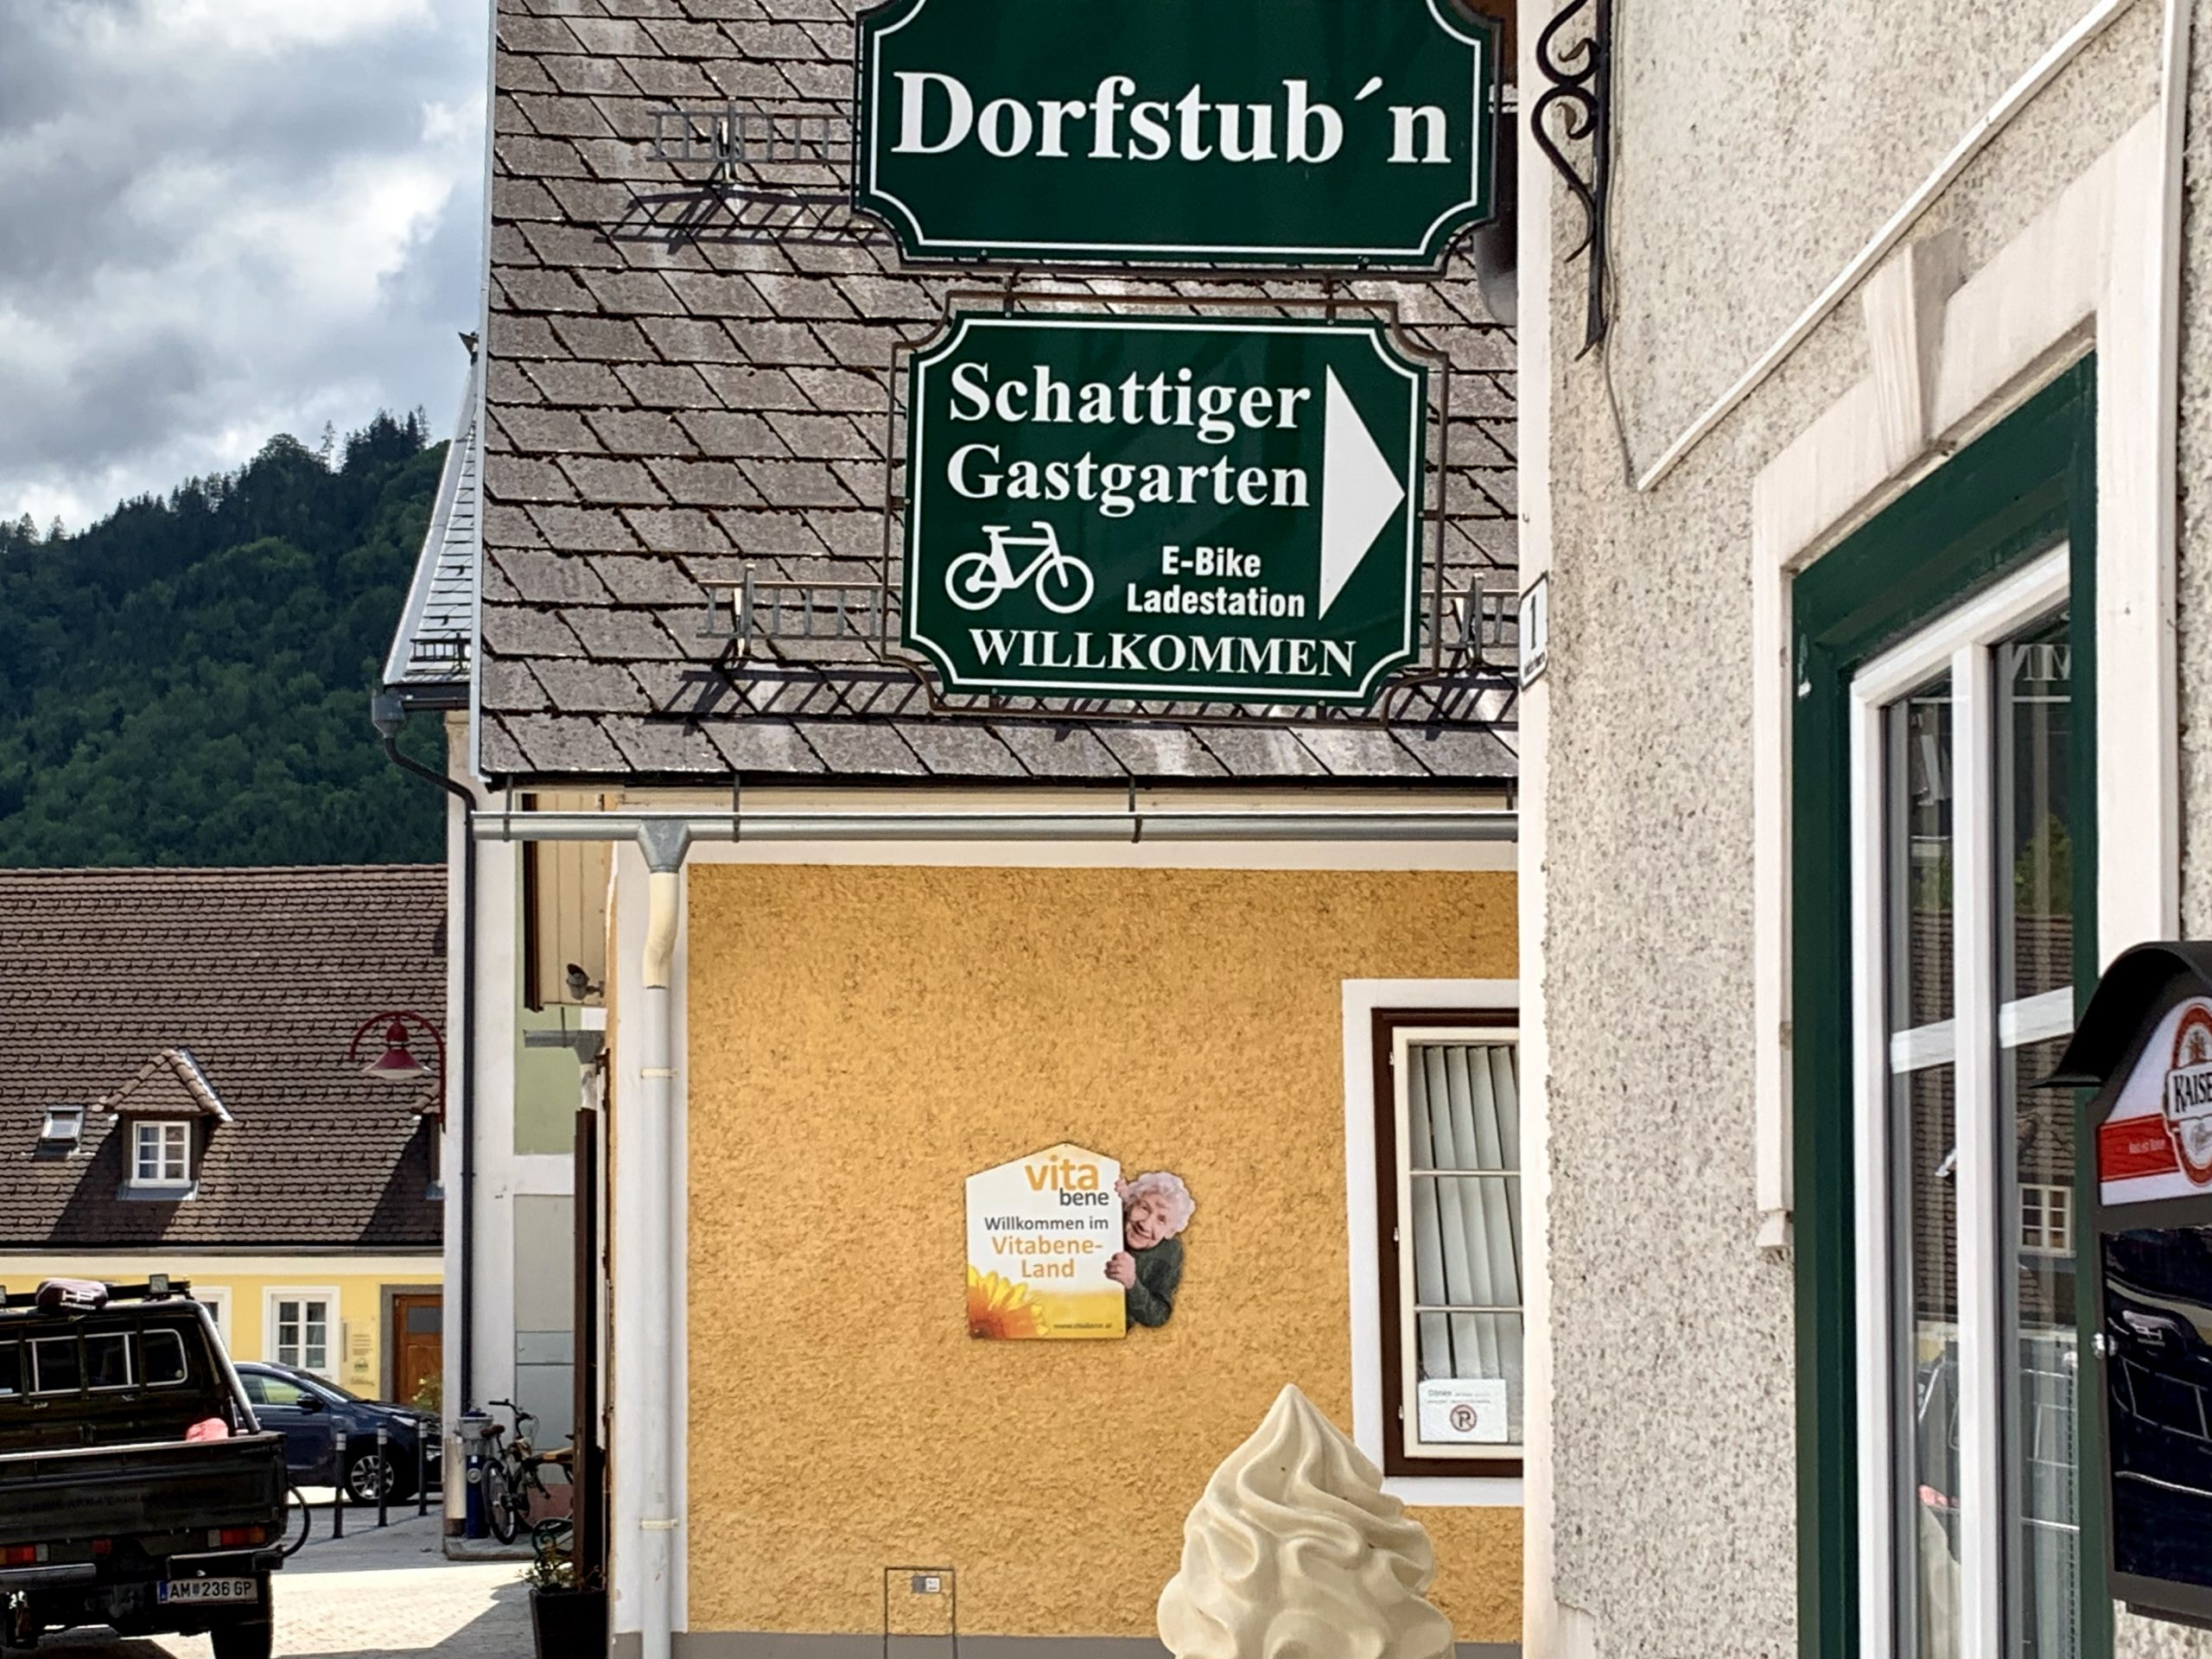 Dorfstubn in Hollenstein an der Ybbs